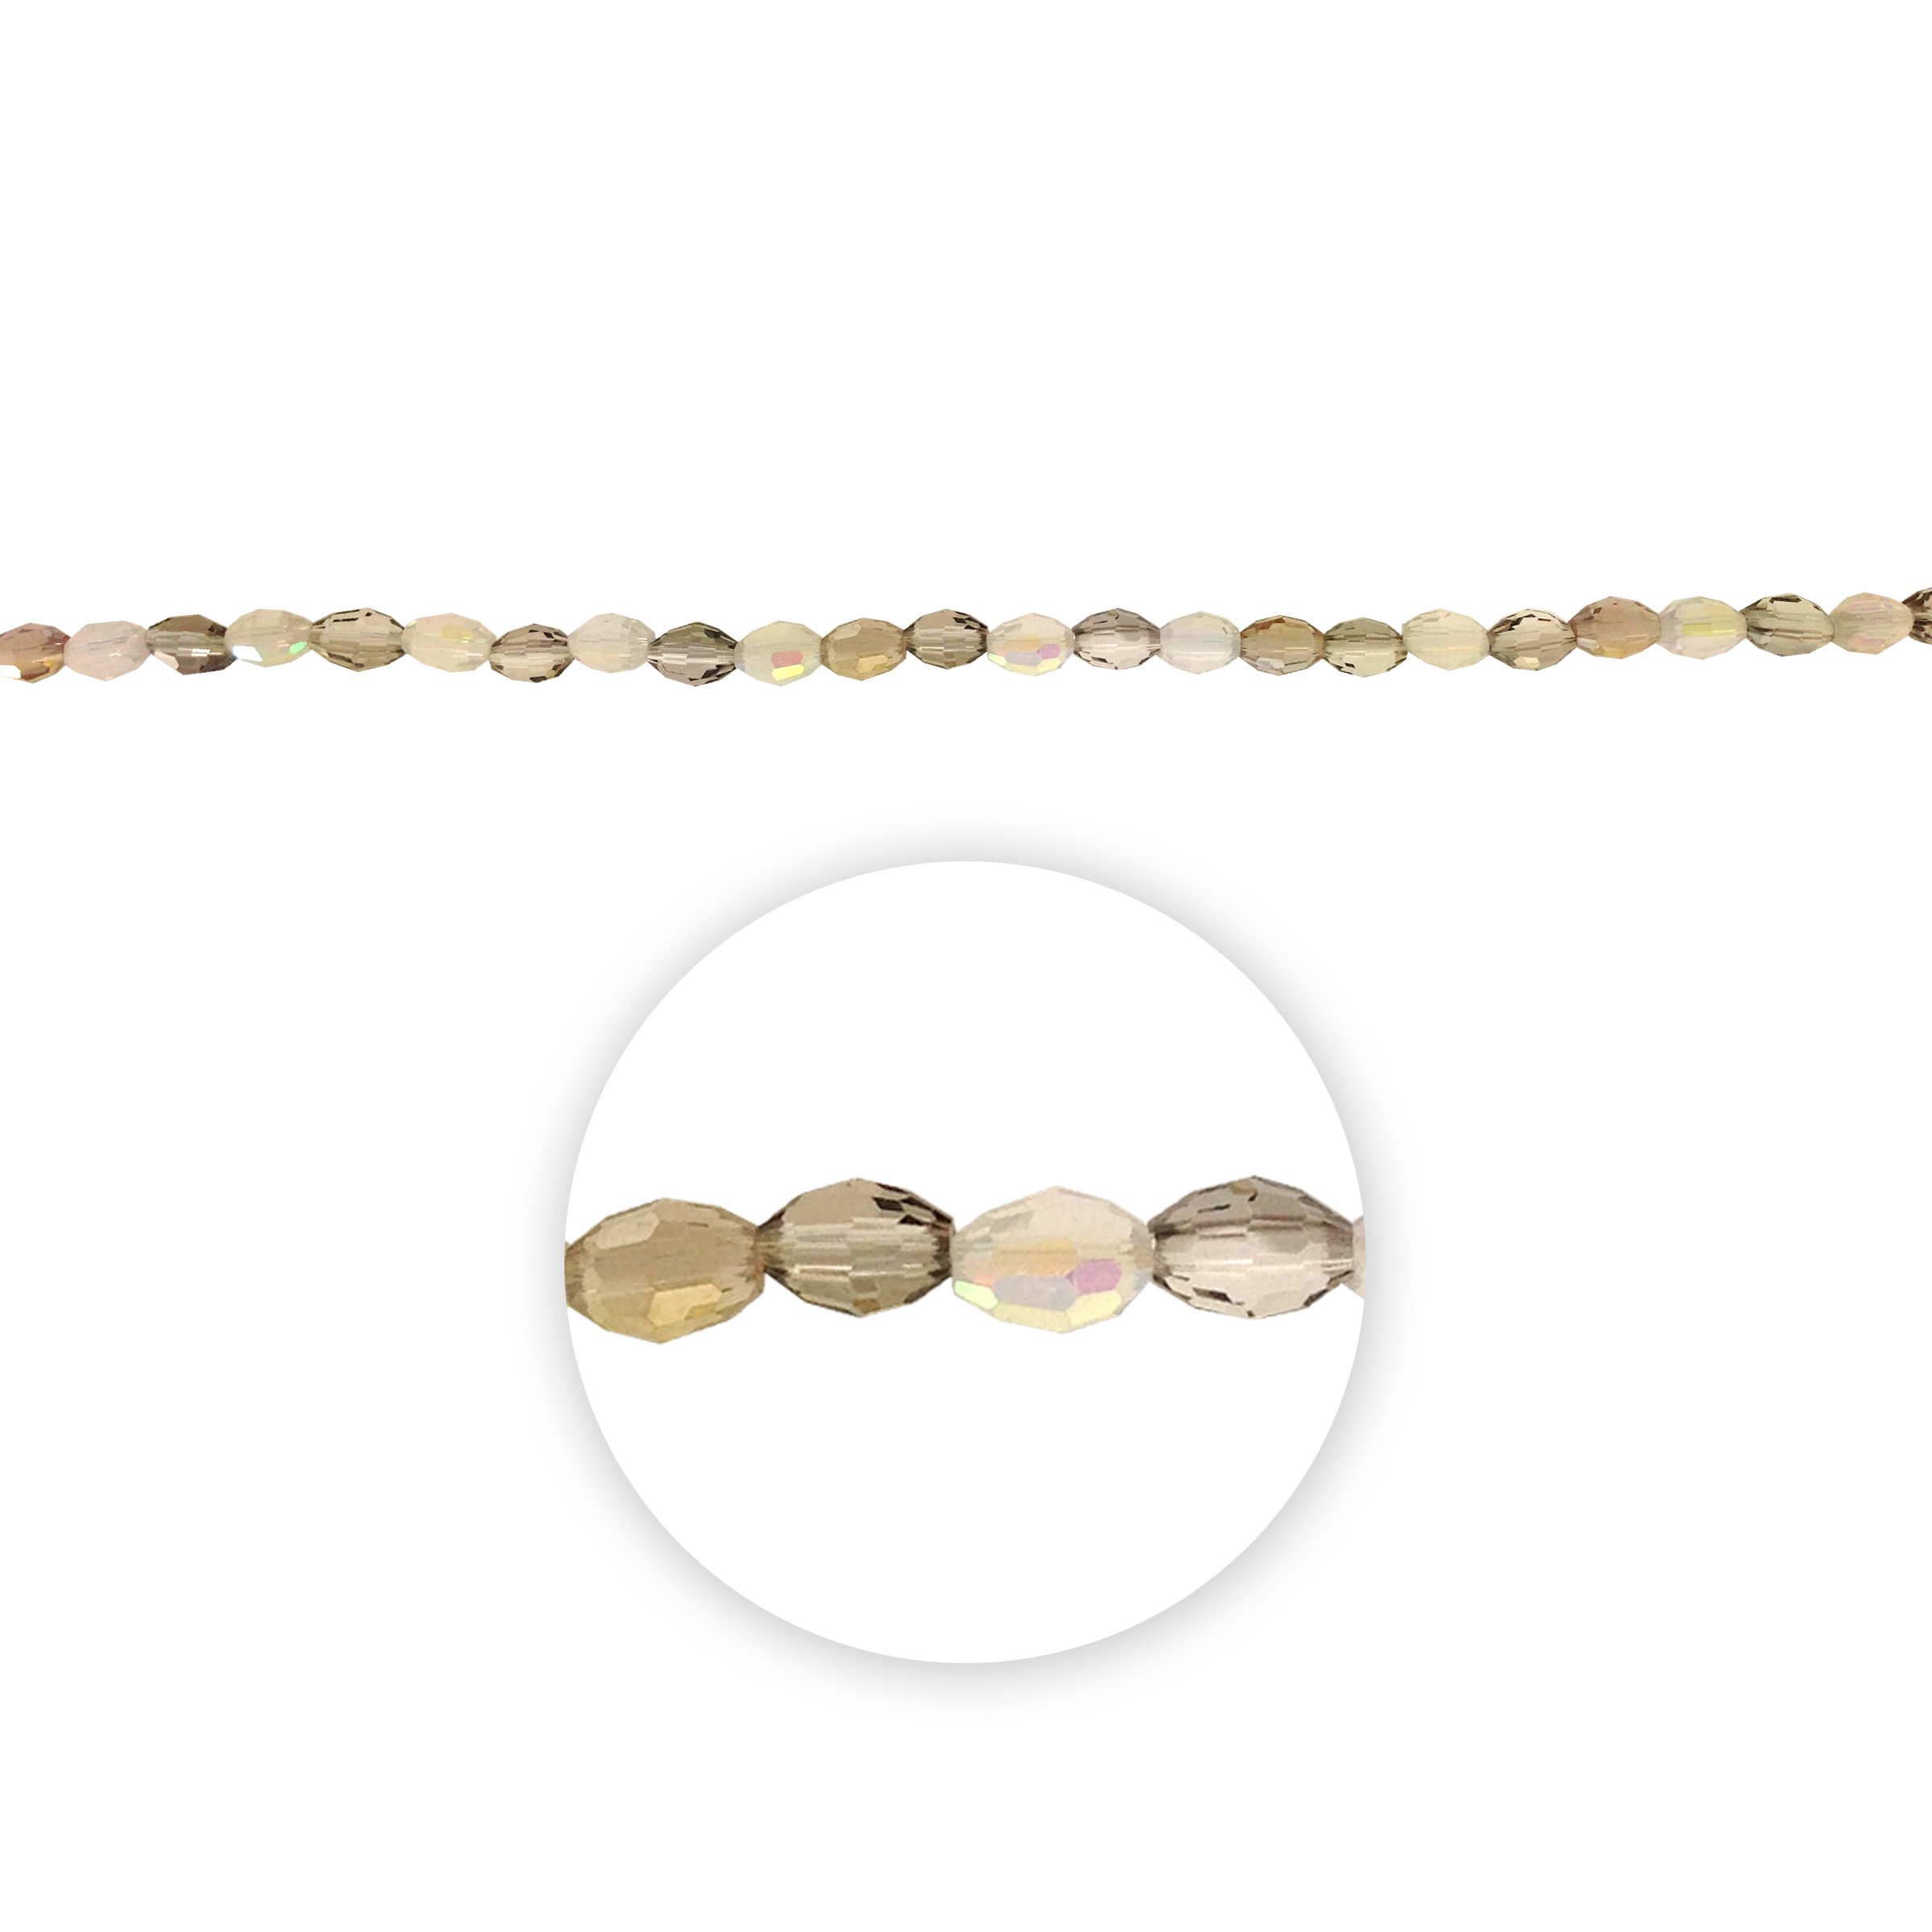 Blue Moon Beads 7\u0022 Crystal Strand, Oval Shape, Smoky Tones